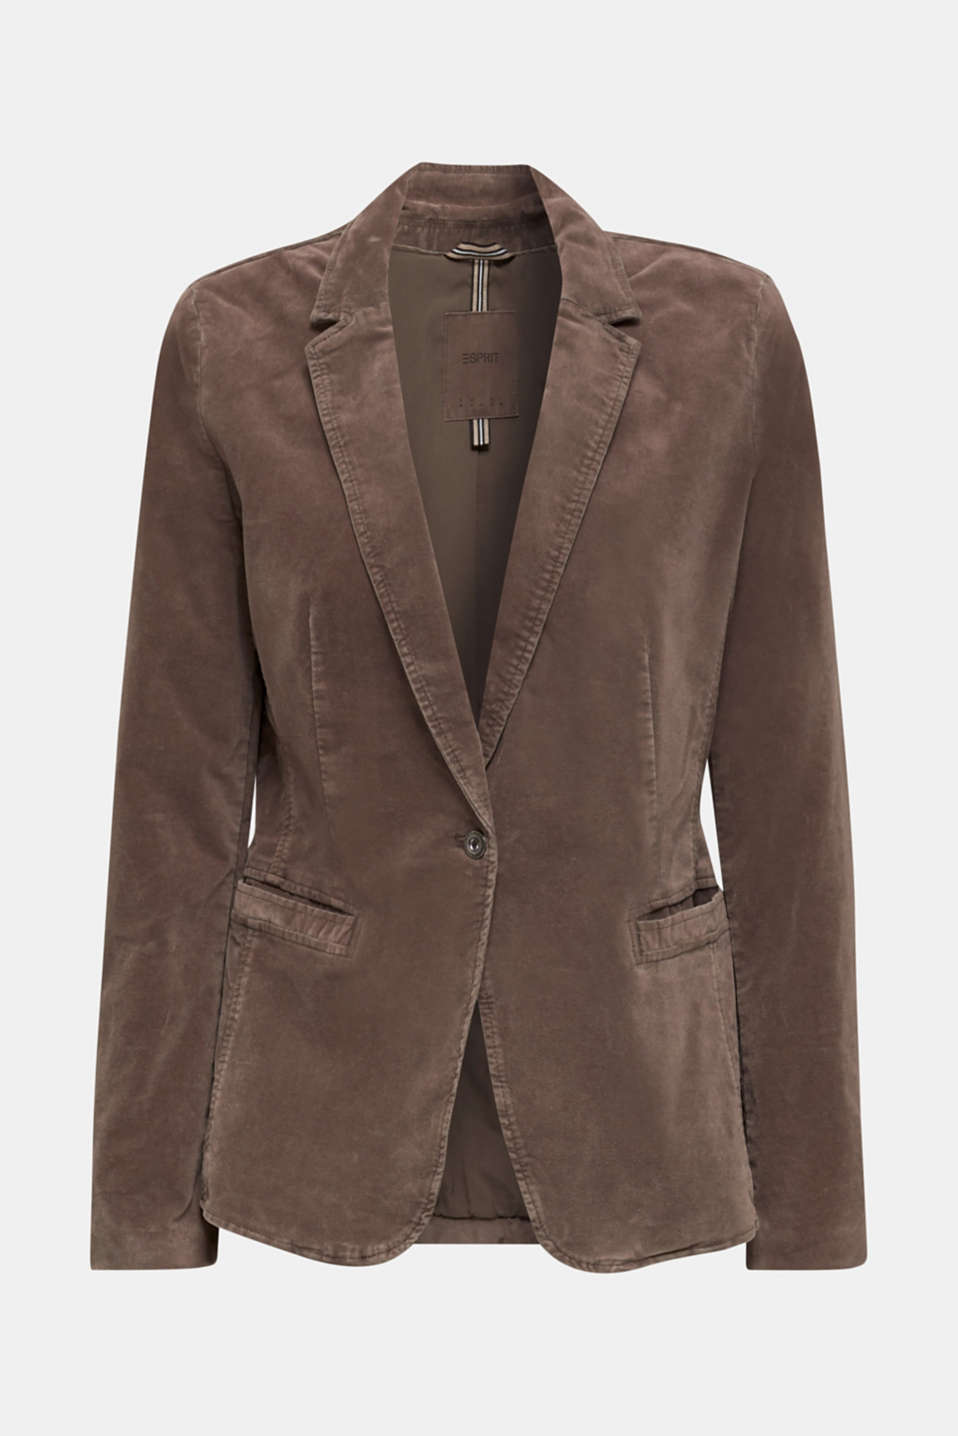 Velvet blazer with stretch for comfort, LIGHT TAUPE, detail image number 6